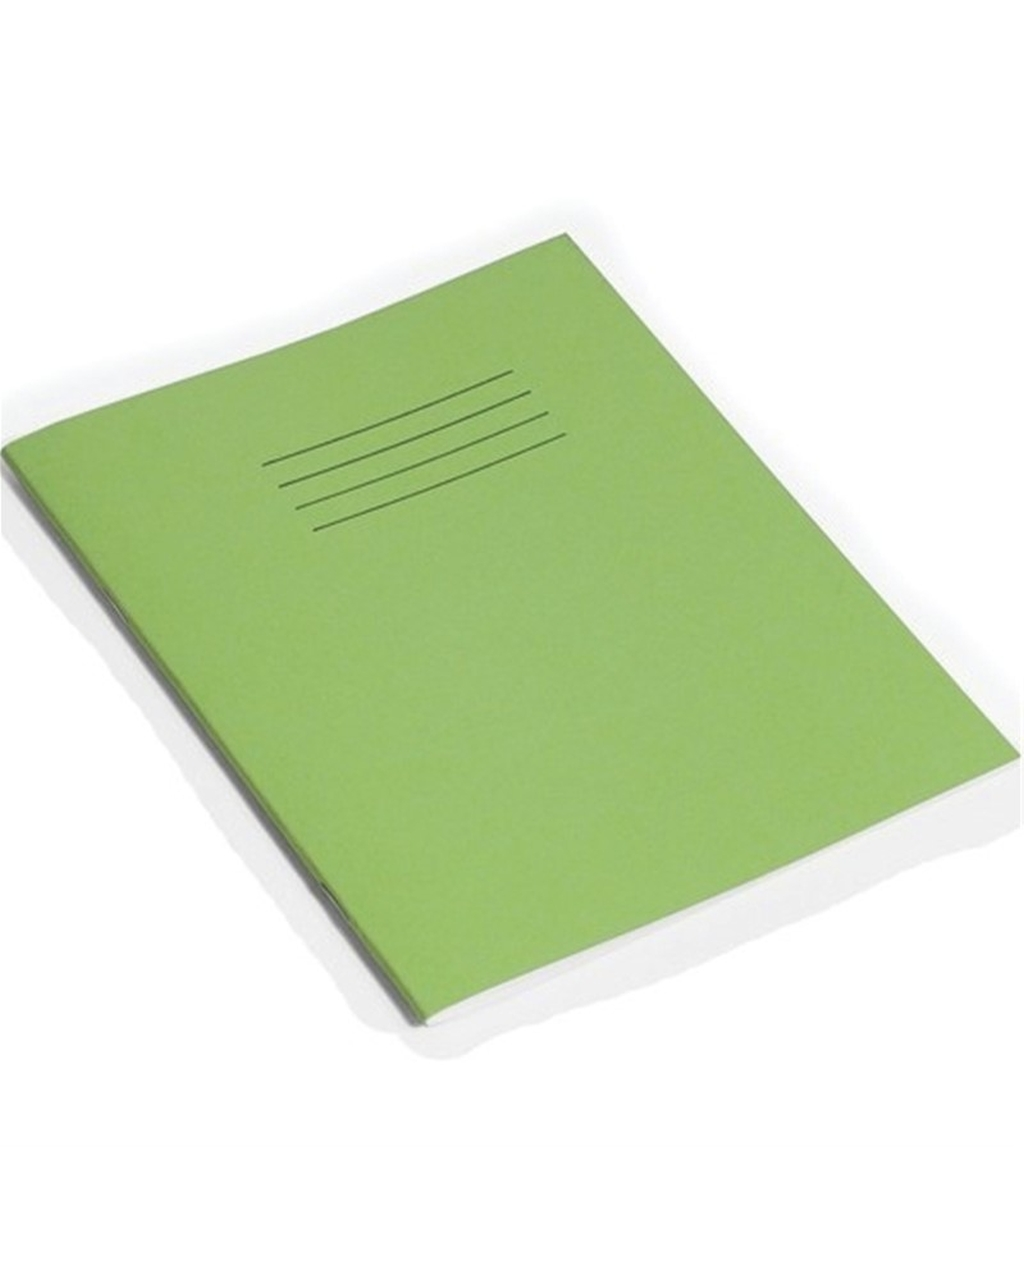 Exercise Book 9 x 7 (229 x 178mm) Light Green Cover 15mm Ruled & Margin 48 Pages